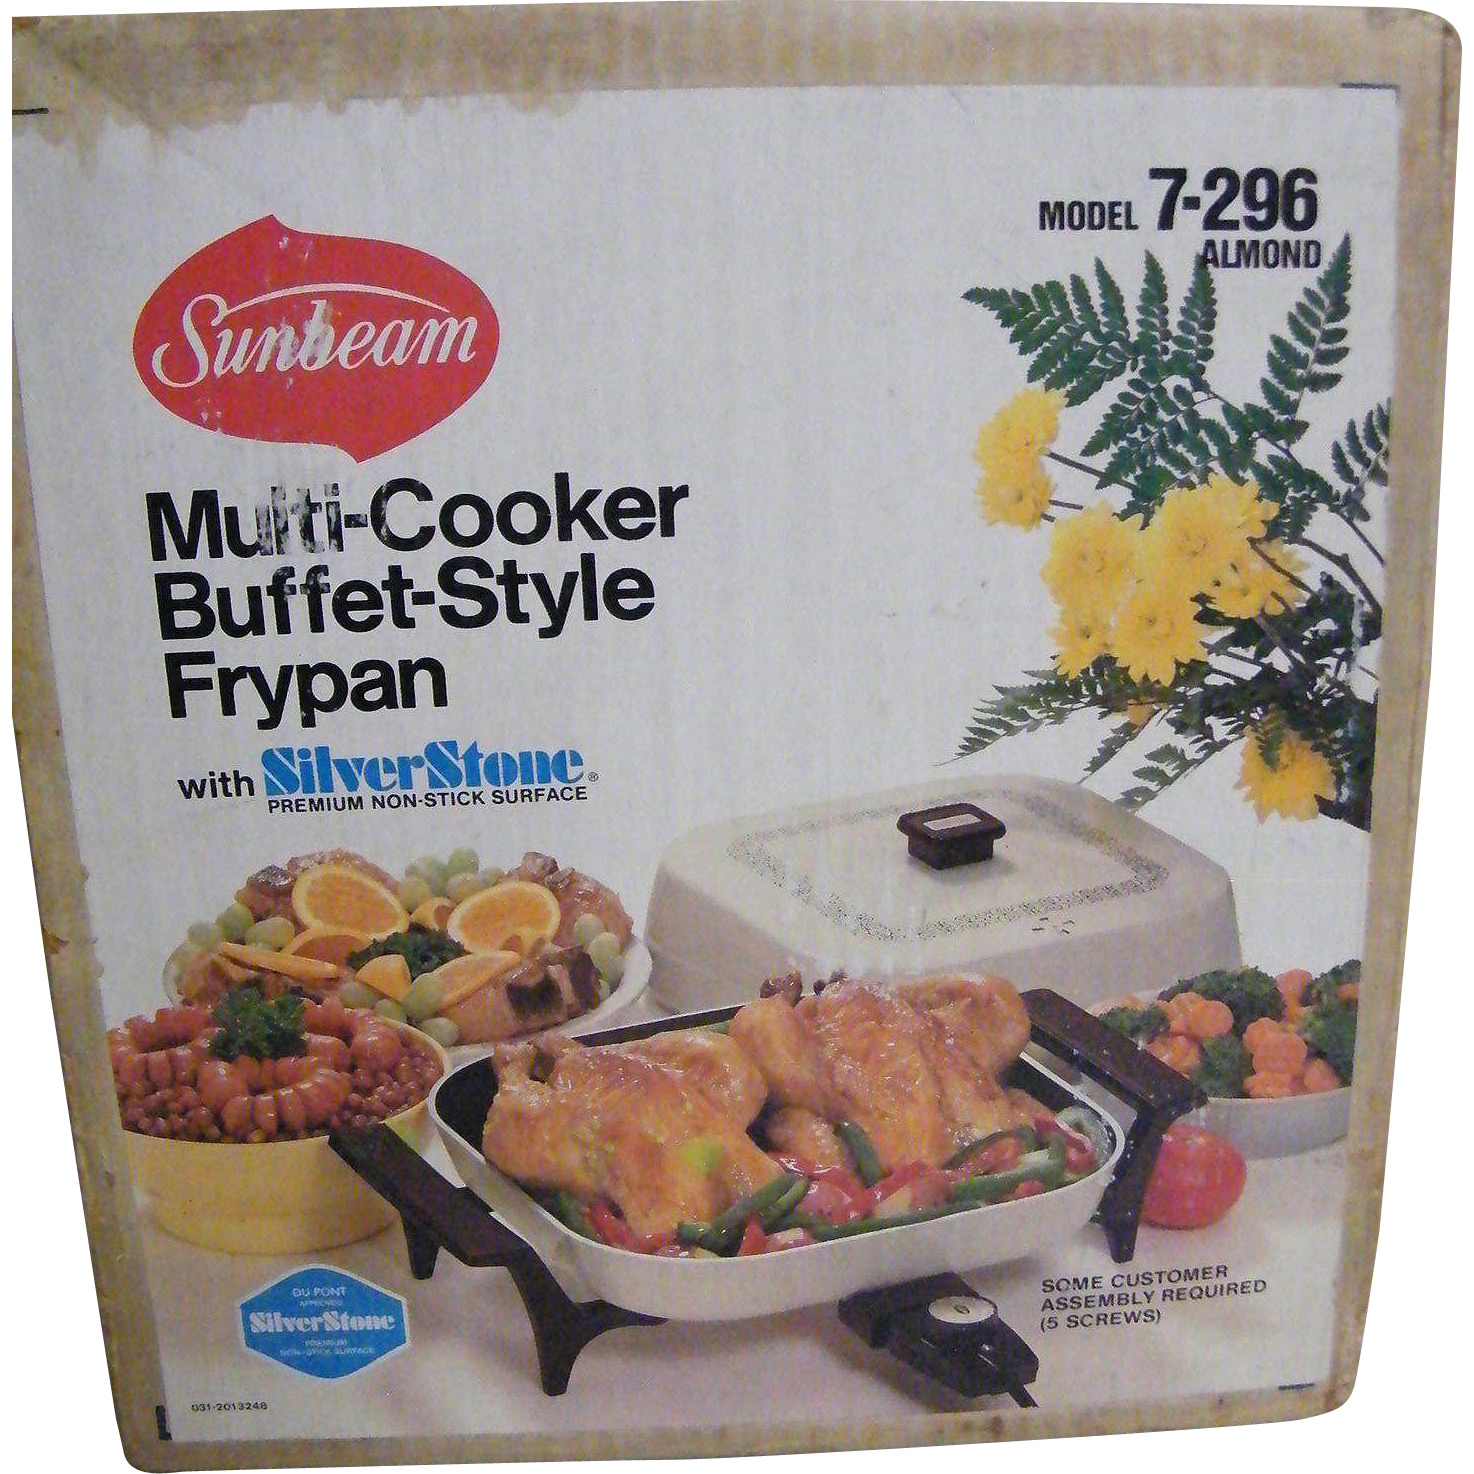 Sunbeam Electric Buffet Style Fry Pan..Almond Enamel Finish..DuPont Silverstone..New In Box..Never Opened